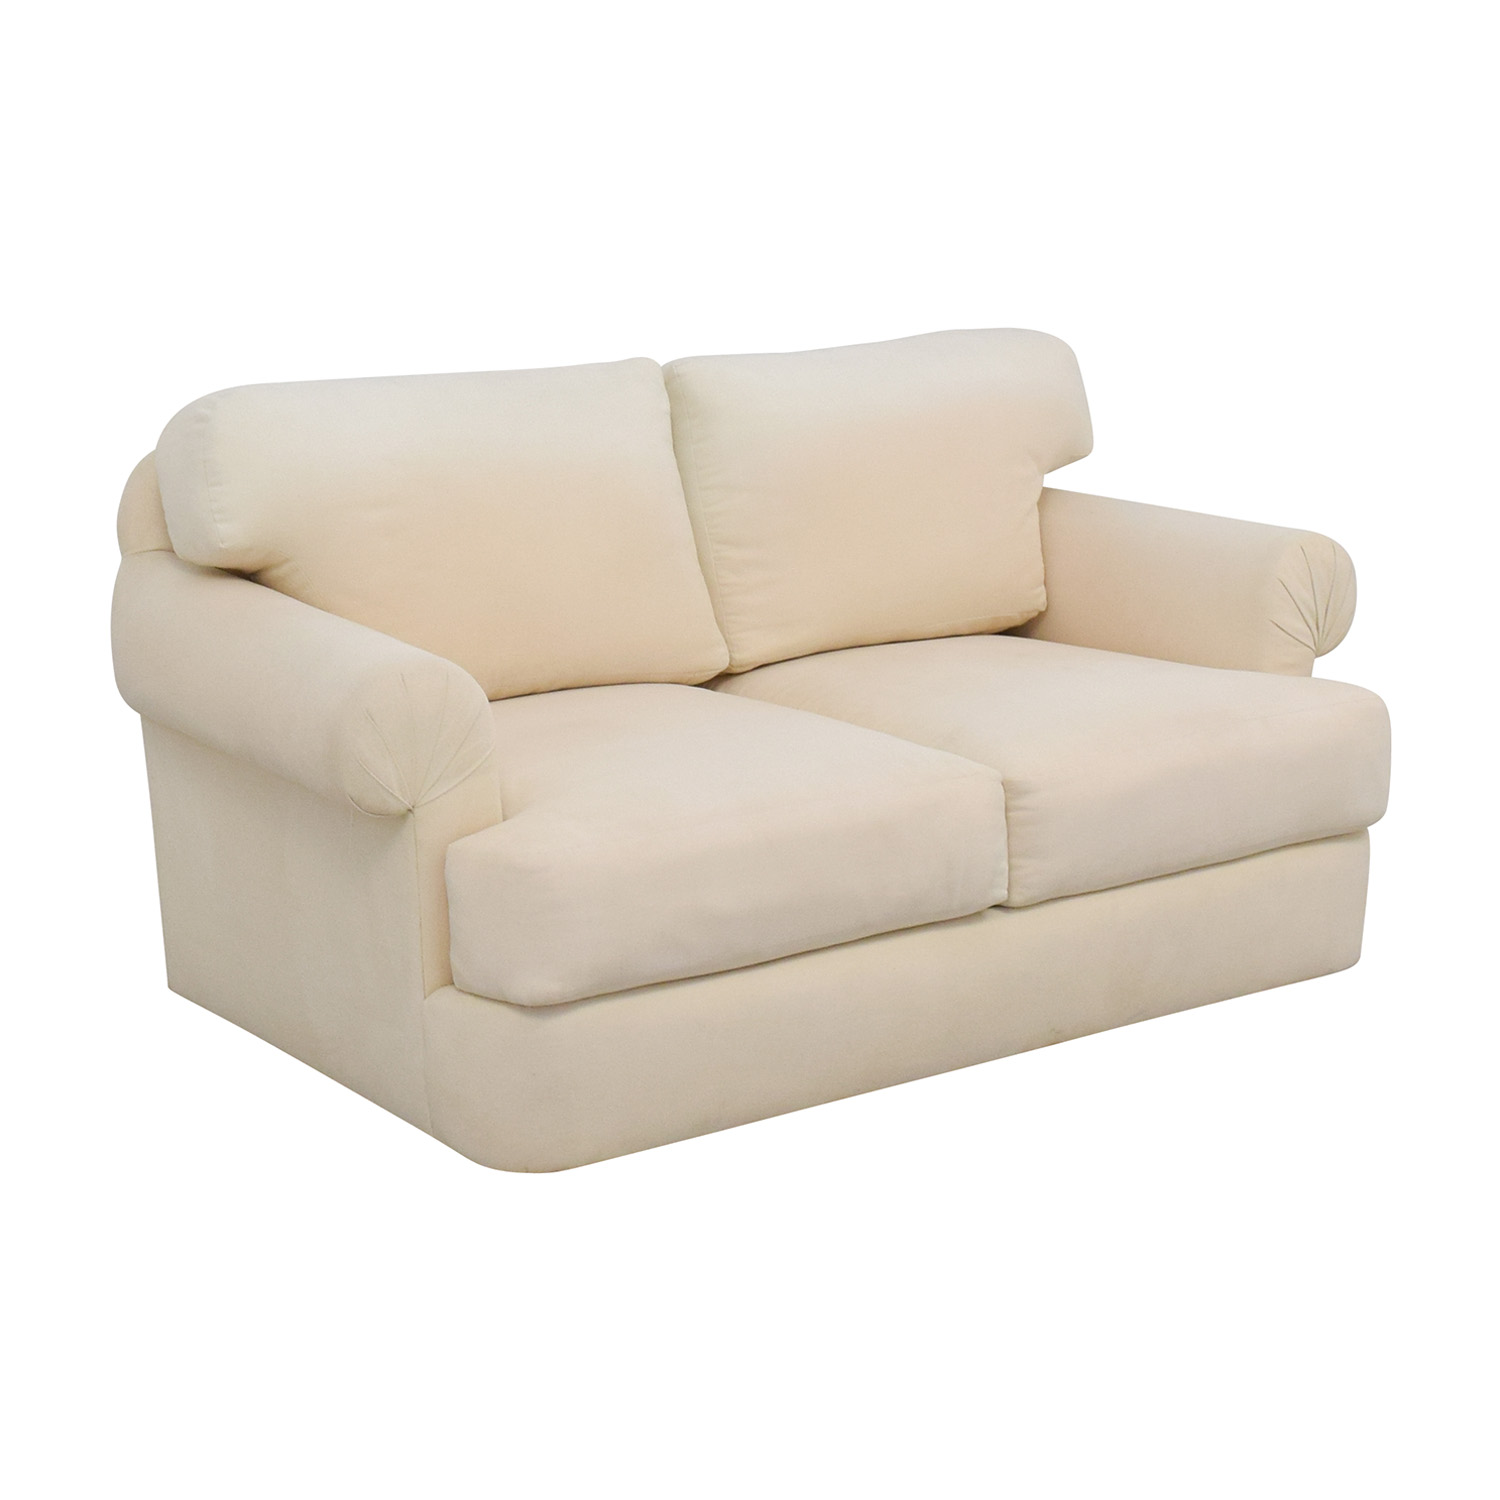 Two Cushion Loveseat coupon